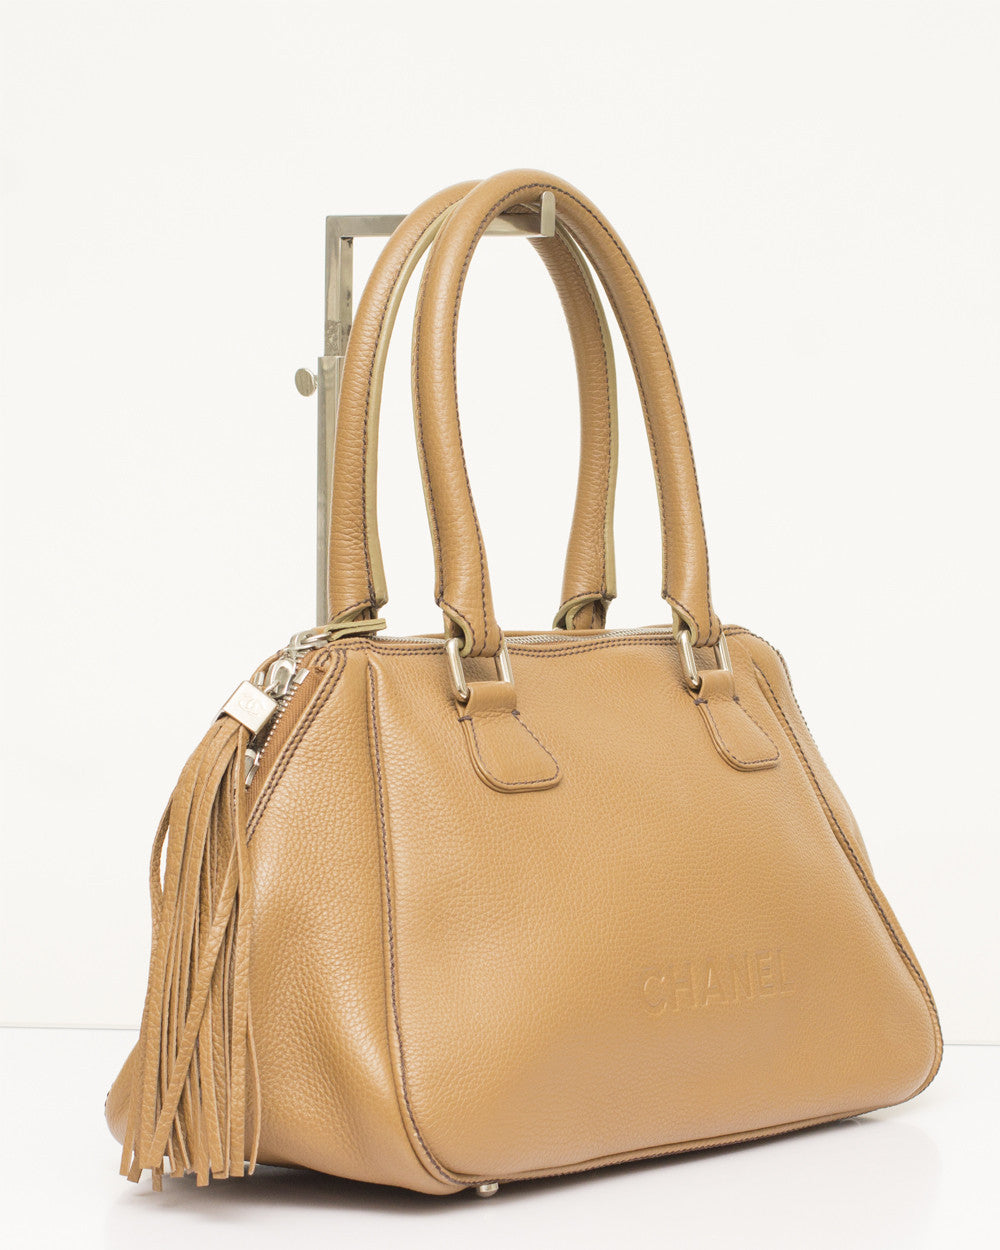 Vintage Tan Tassel Tote Bag